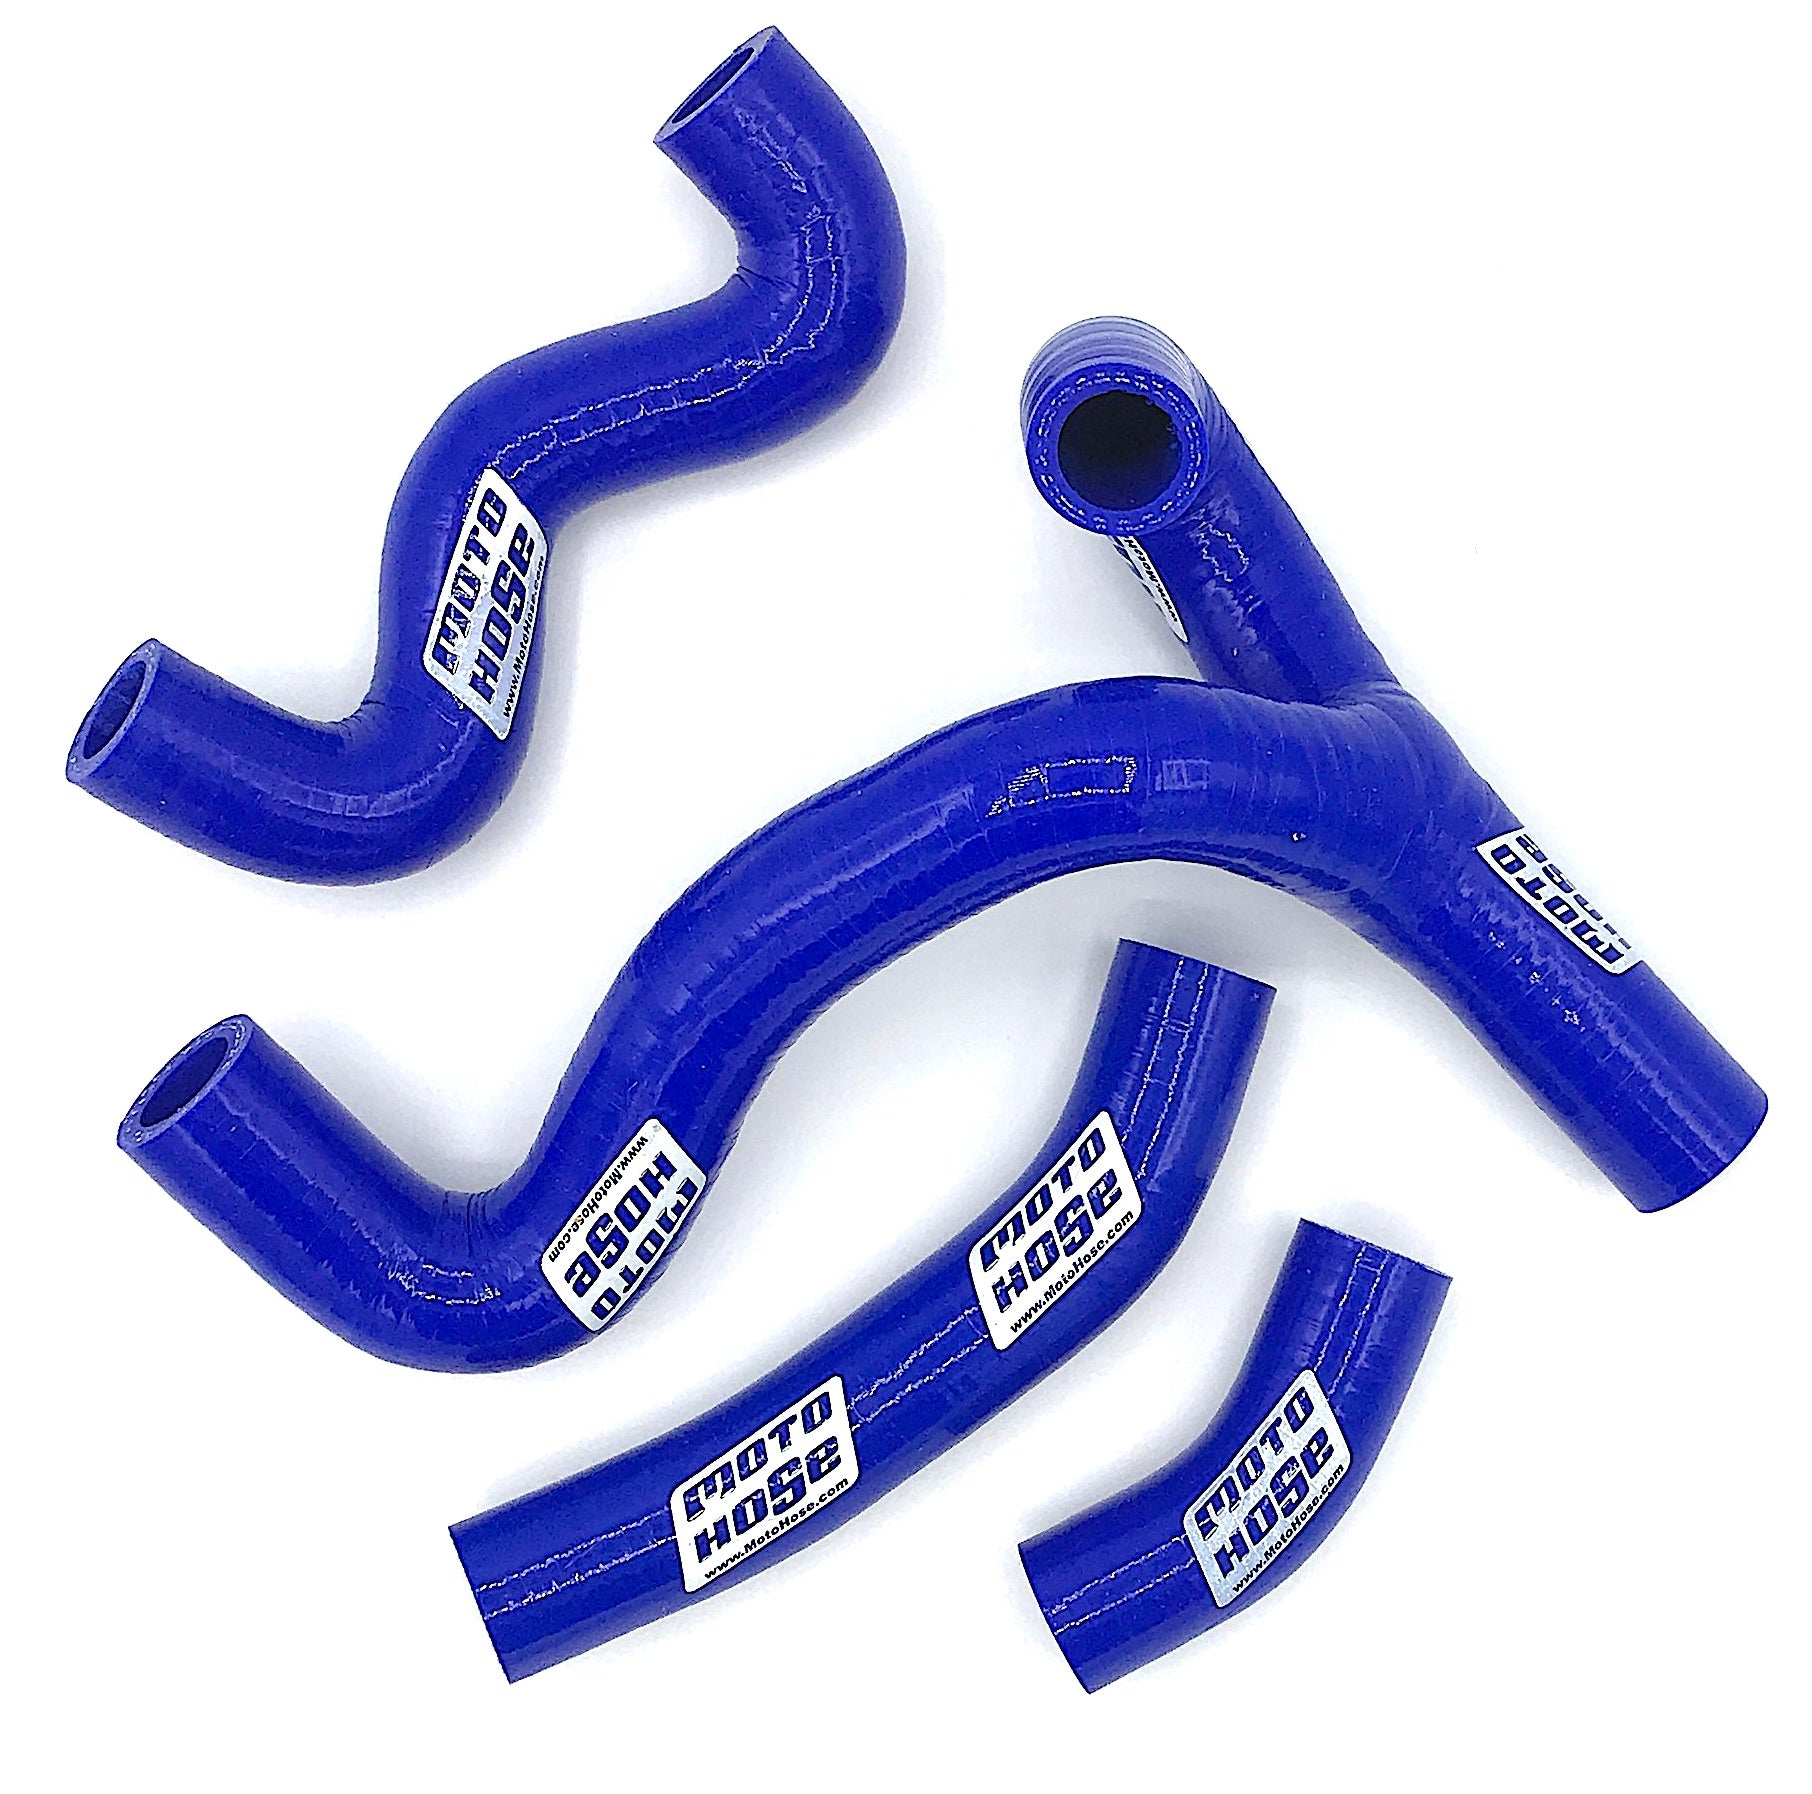 KTM 2 STROKE OFF ROAD SILICONE RADIATOR HOSE